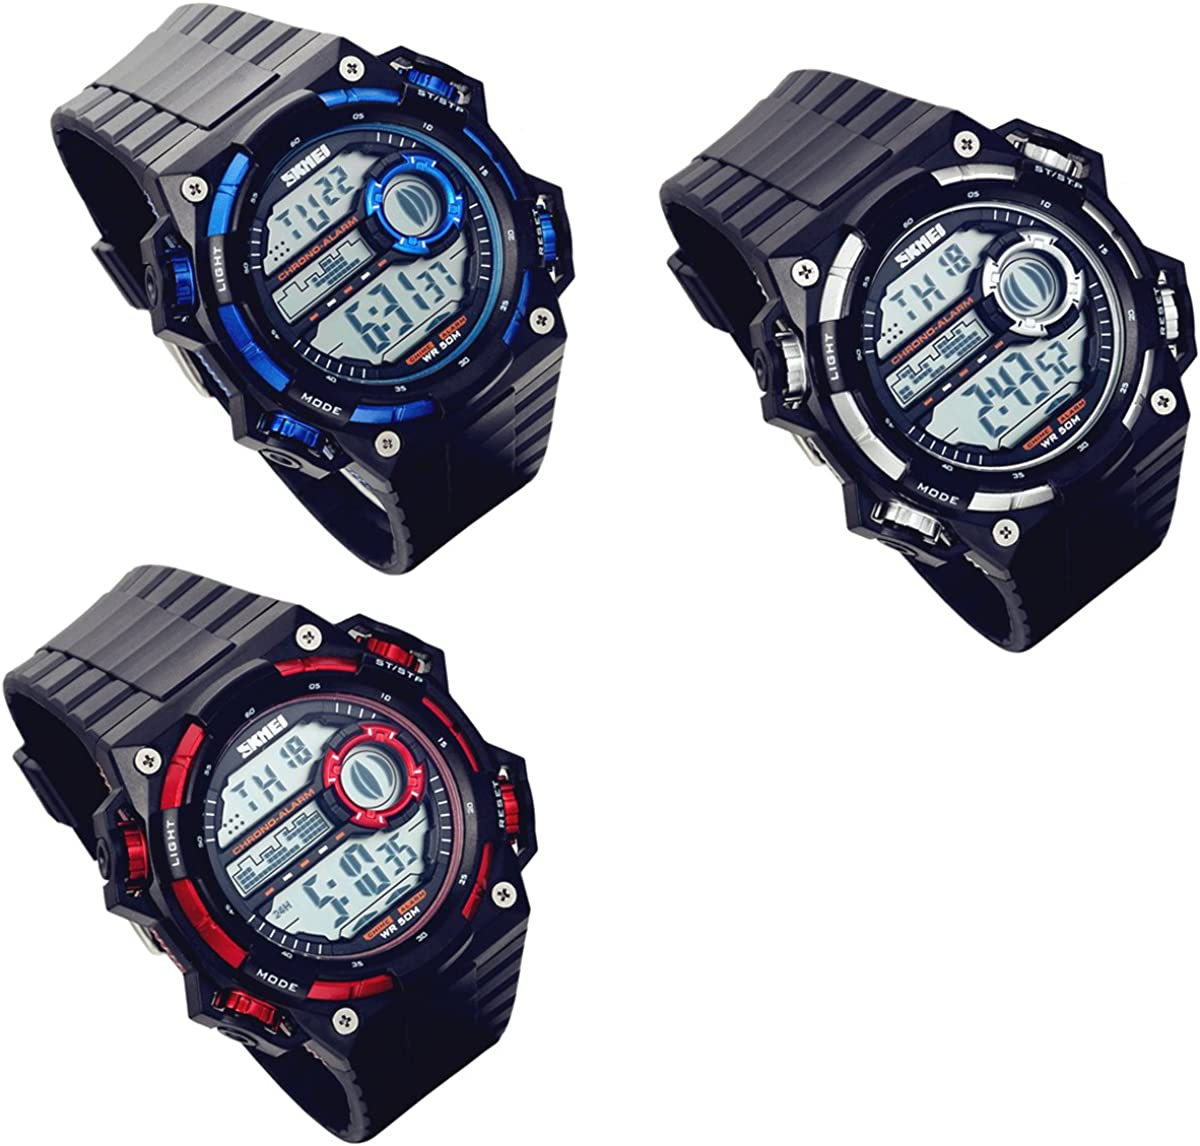 Lancardo 50M Waterproof Digital Muti-Function Sport Military Army Police Watch